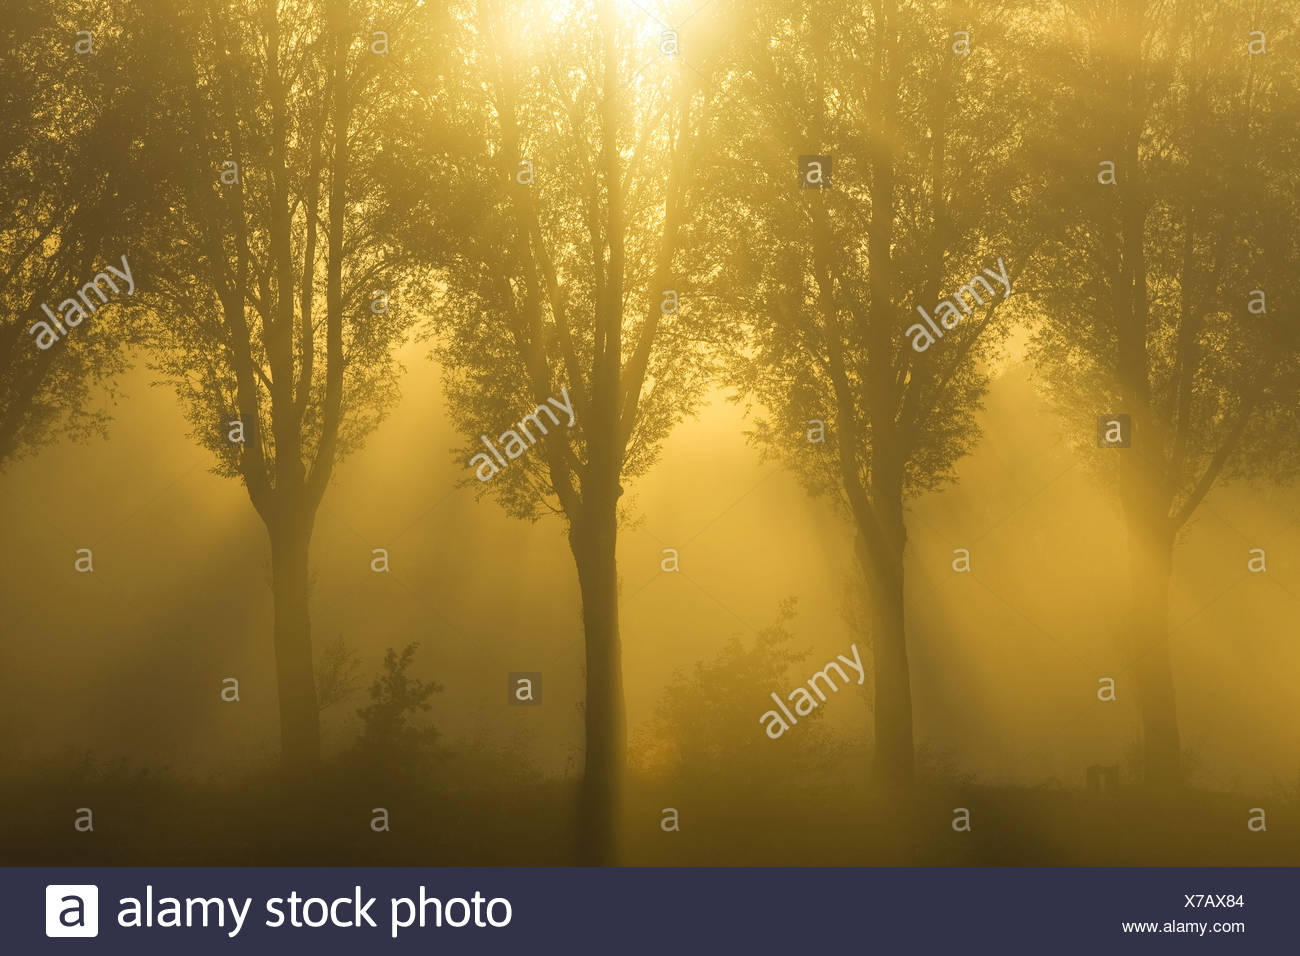 willow, osier (Salix spec.), sun shining through a row of trees in the morning mist, Belgium - Stock Image